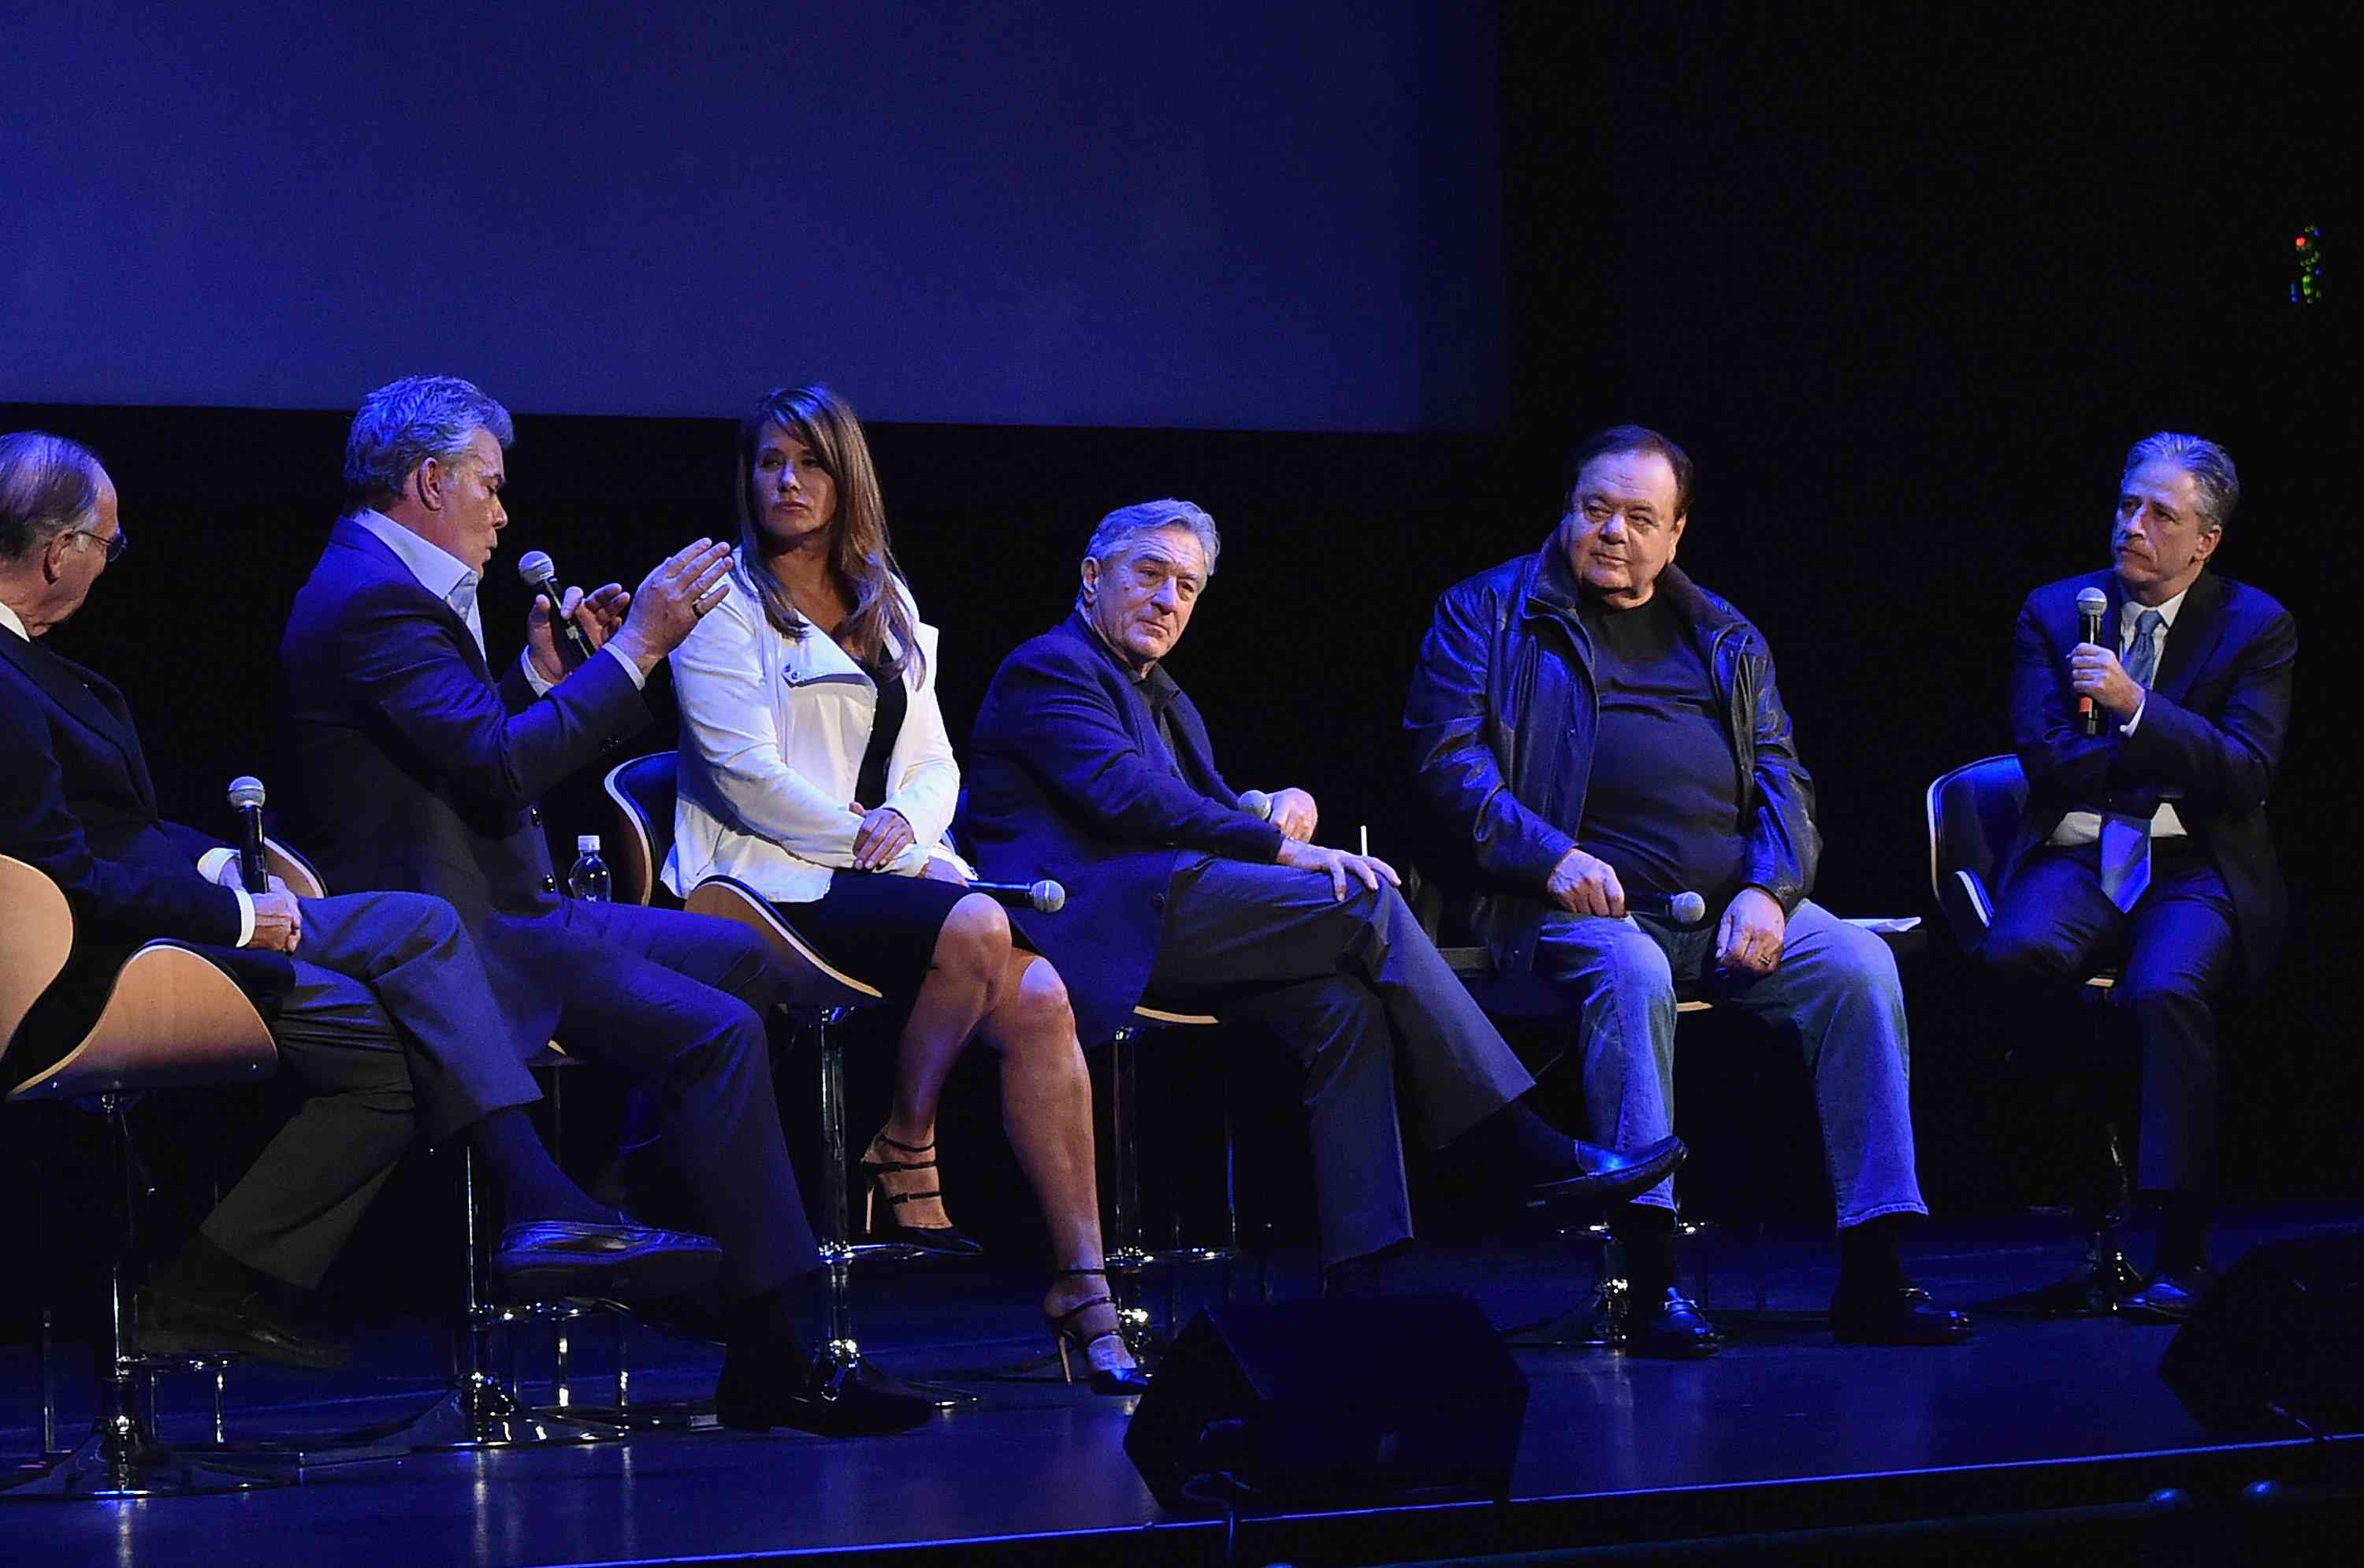 25th anniversary of Goodfellas at the closing of the Tribeca Film Festival